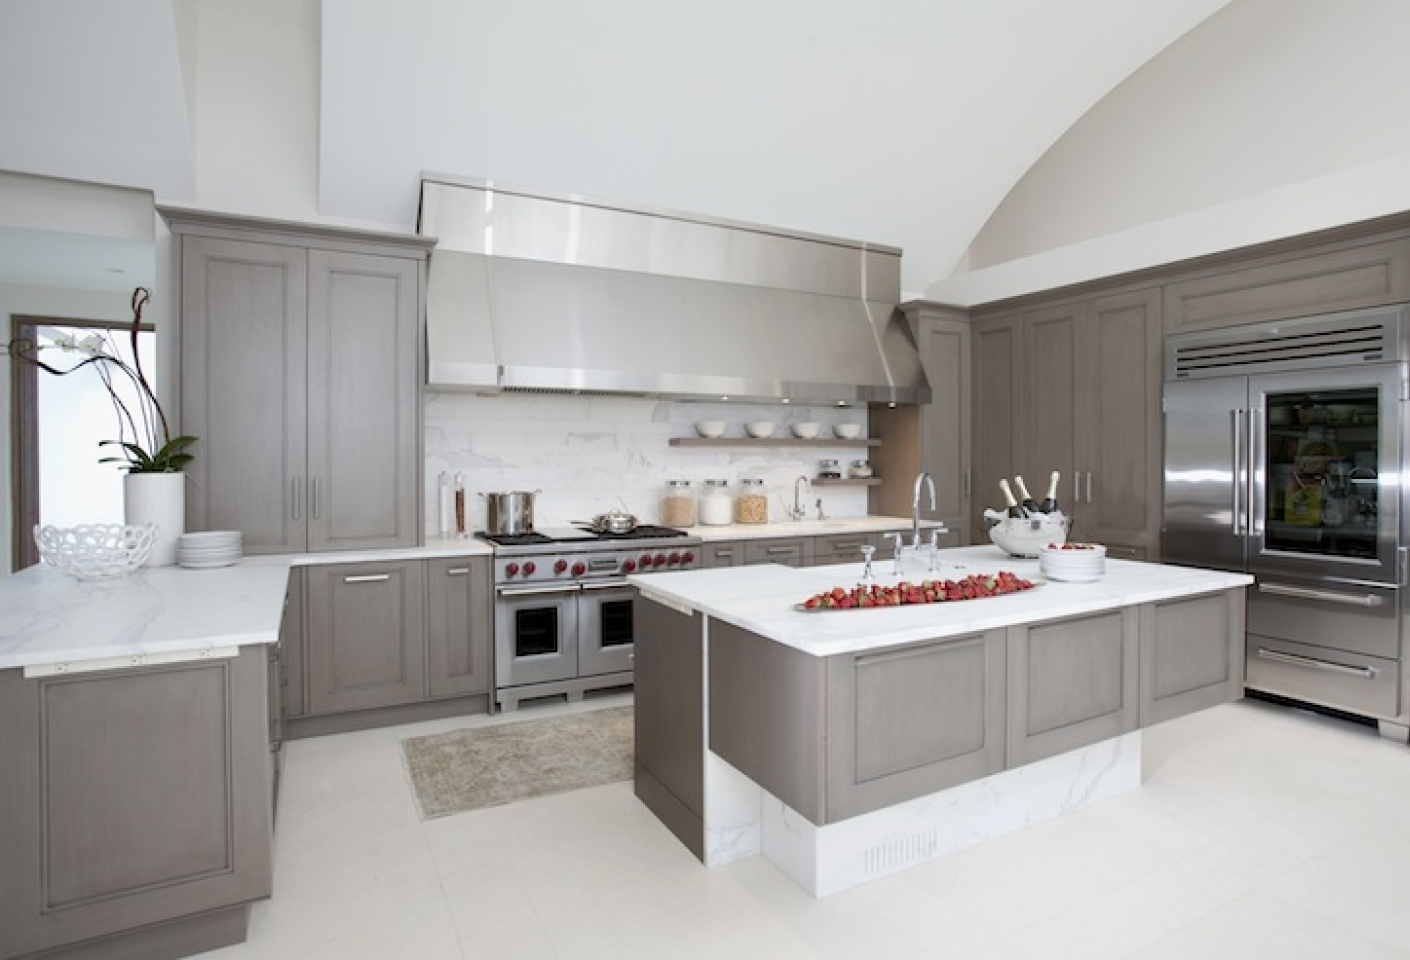 Charming Design Grey Kitchen Ideas With Rectangle Shape ... - photo#16